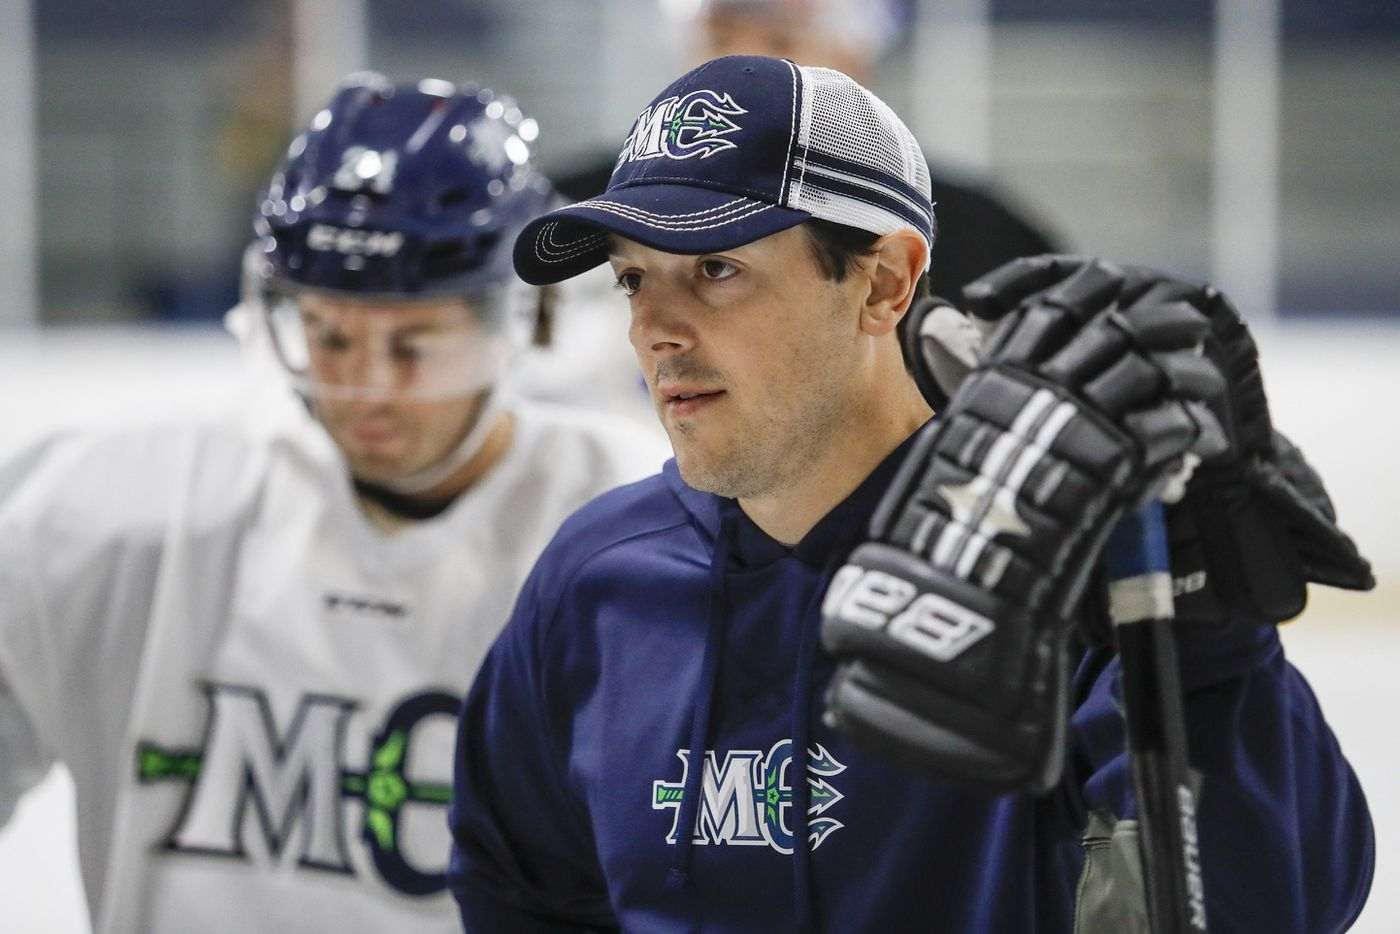 ECHL: Former Flyer Danny Briere Finds New Life Reviving The Mariners Of Maine